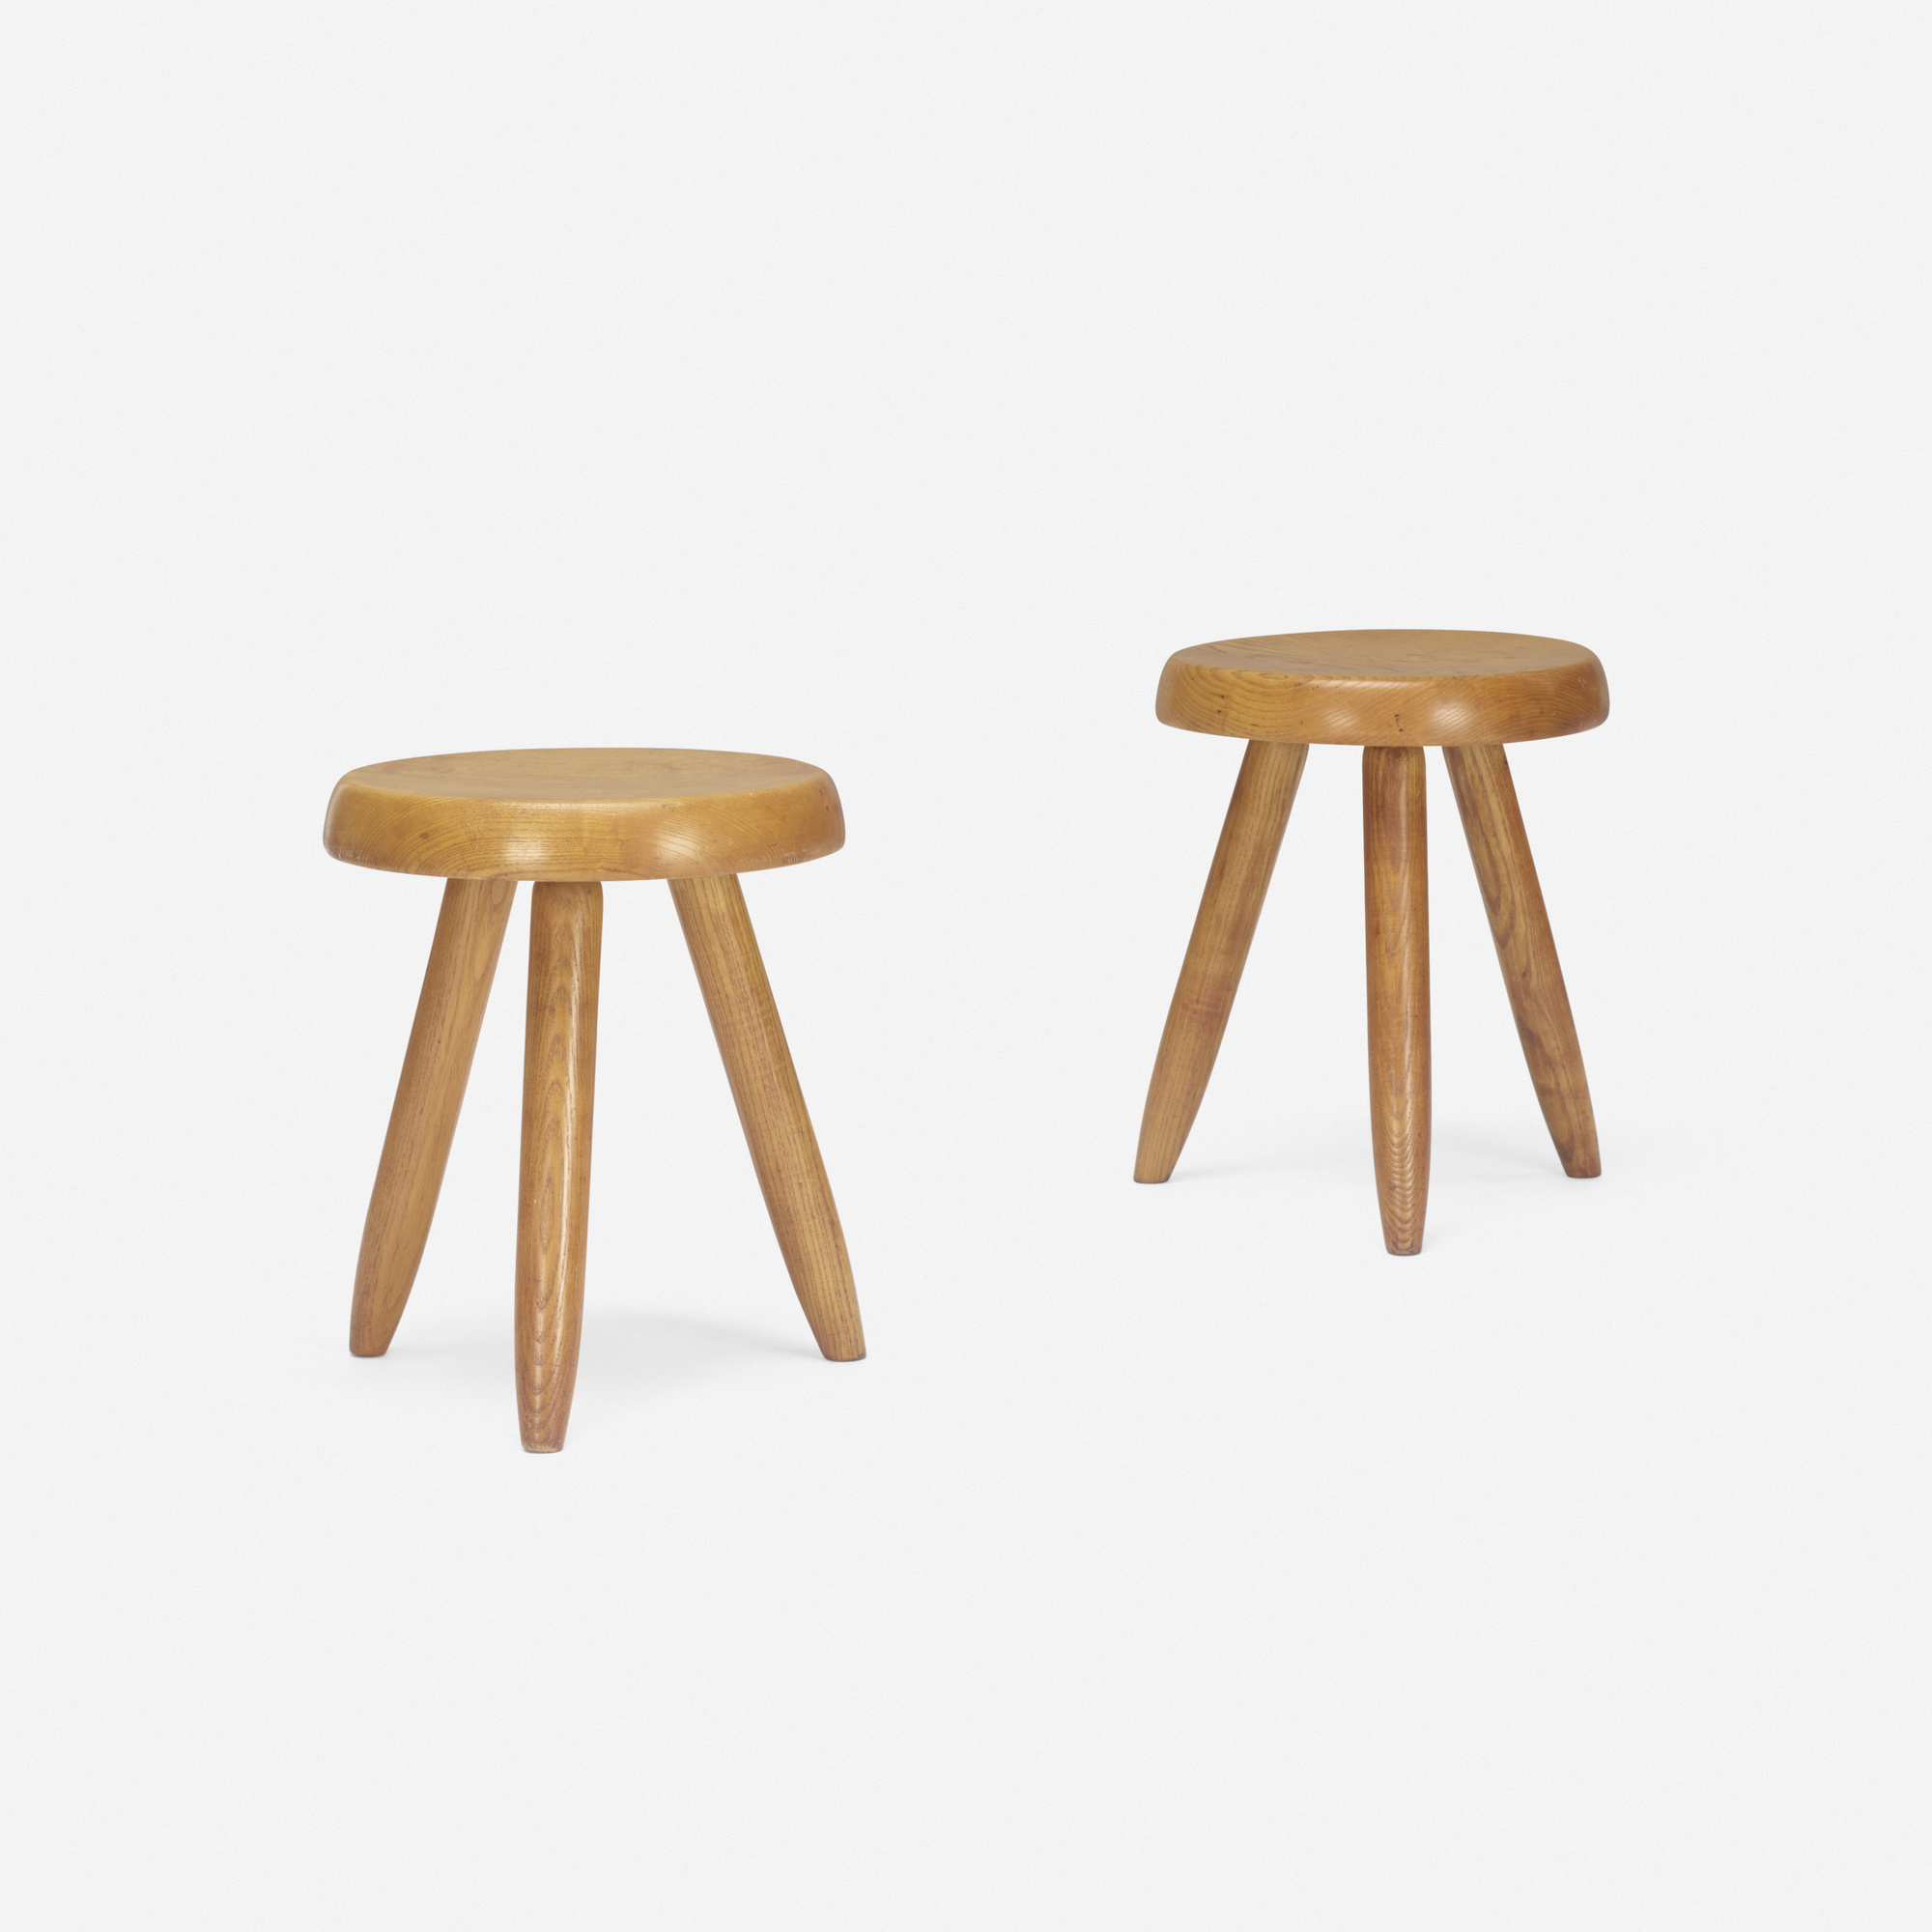 121: Charlotte Perriand / stools, pair (1 of 2)